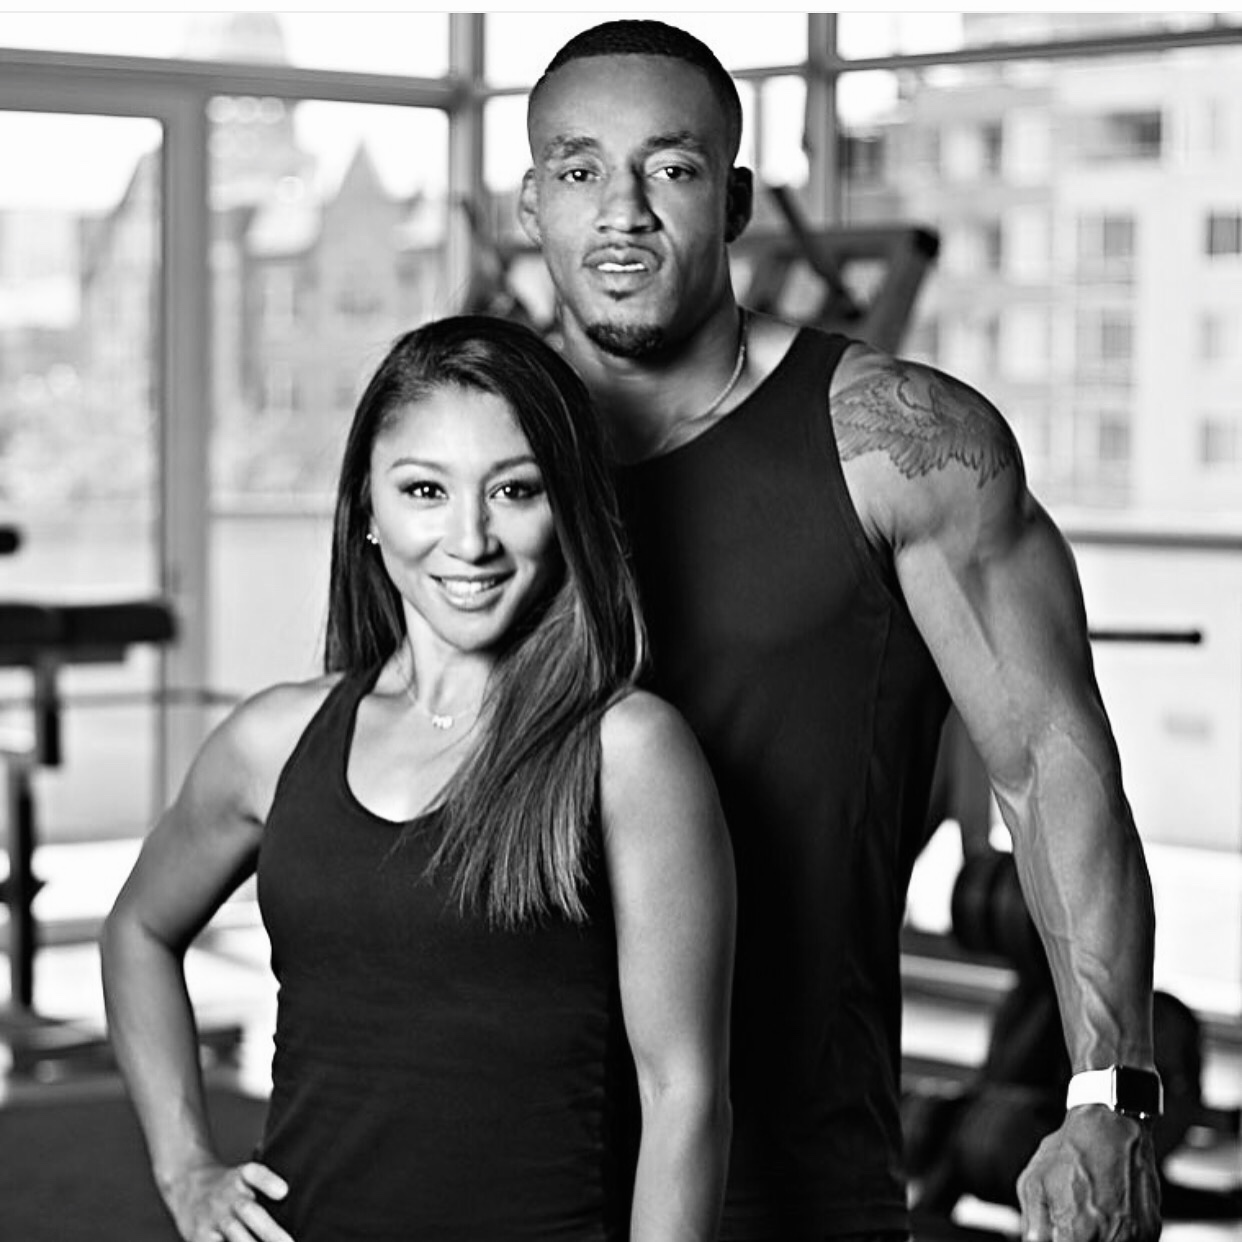 Original Denver, 303. Founded in 2003. - Our passion is fitness. Our philosophy ? Compound Consistency.Consistently doing the right things for our bodies, leads to compounding effects. Life changing effects.The infusions of our workouts, are seeded from our different athletic roots.Jen, a classically trained dancer emphasizes tiny moves, precision of execution.Courtney, a classically trained athlete emphasizes big bold moves, with heavy weights.Combined, this is the secret sauce of Bodies By Perseverance. Original Denver, our personal training inspire and create Denver's strongest, healthiest and sexiest bodies.